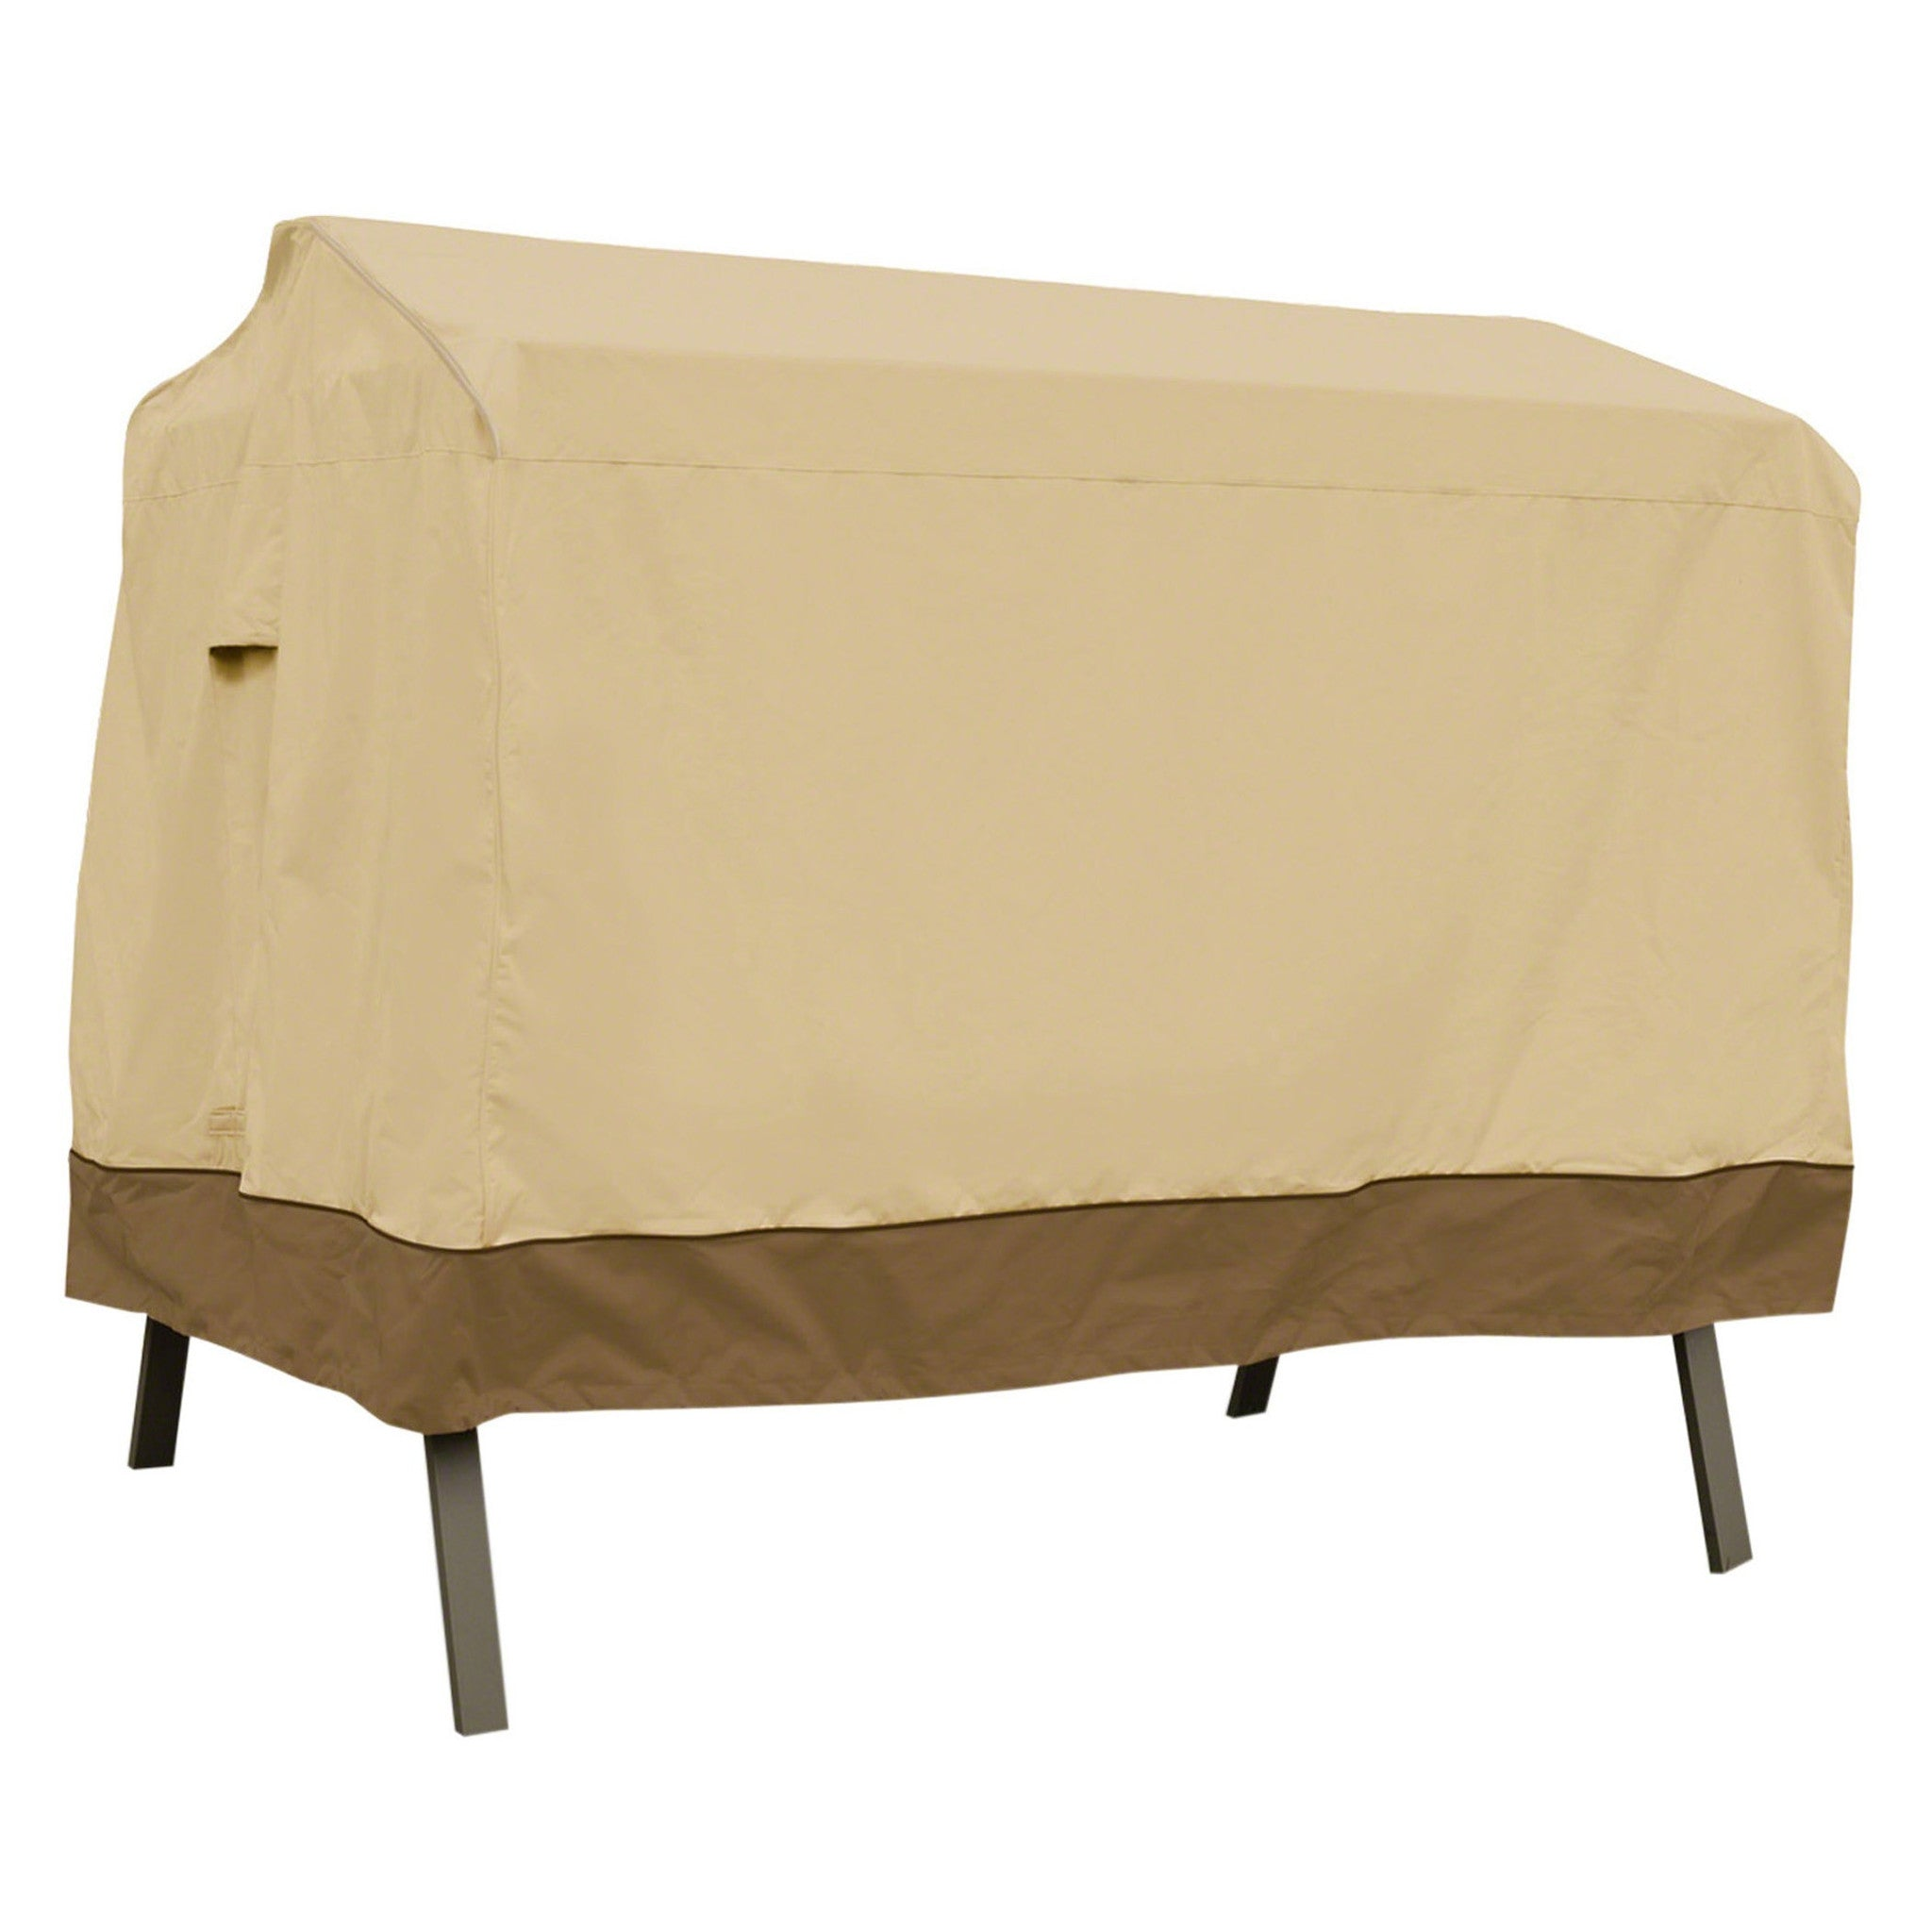 bcp walmart ip cushions removable outdoor convertible lg w com swing glider person canopy